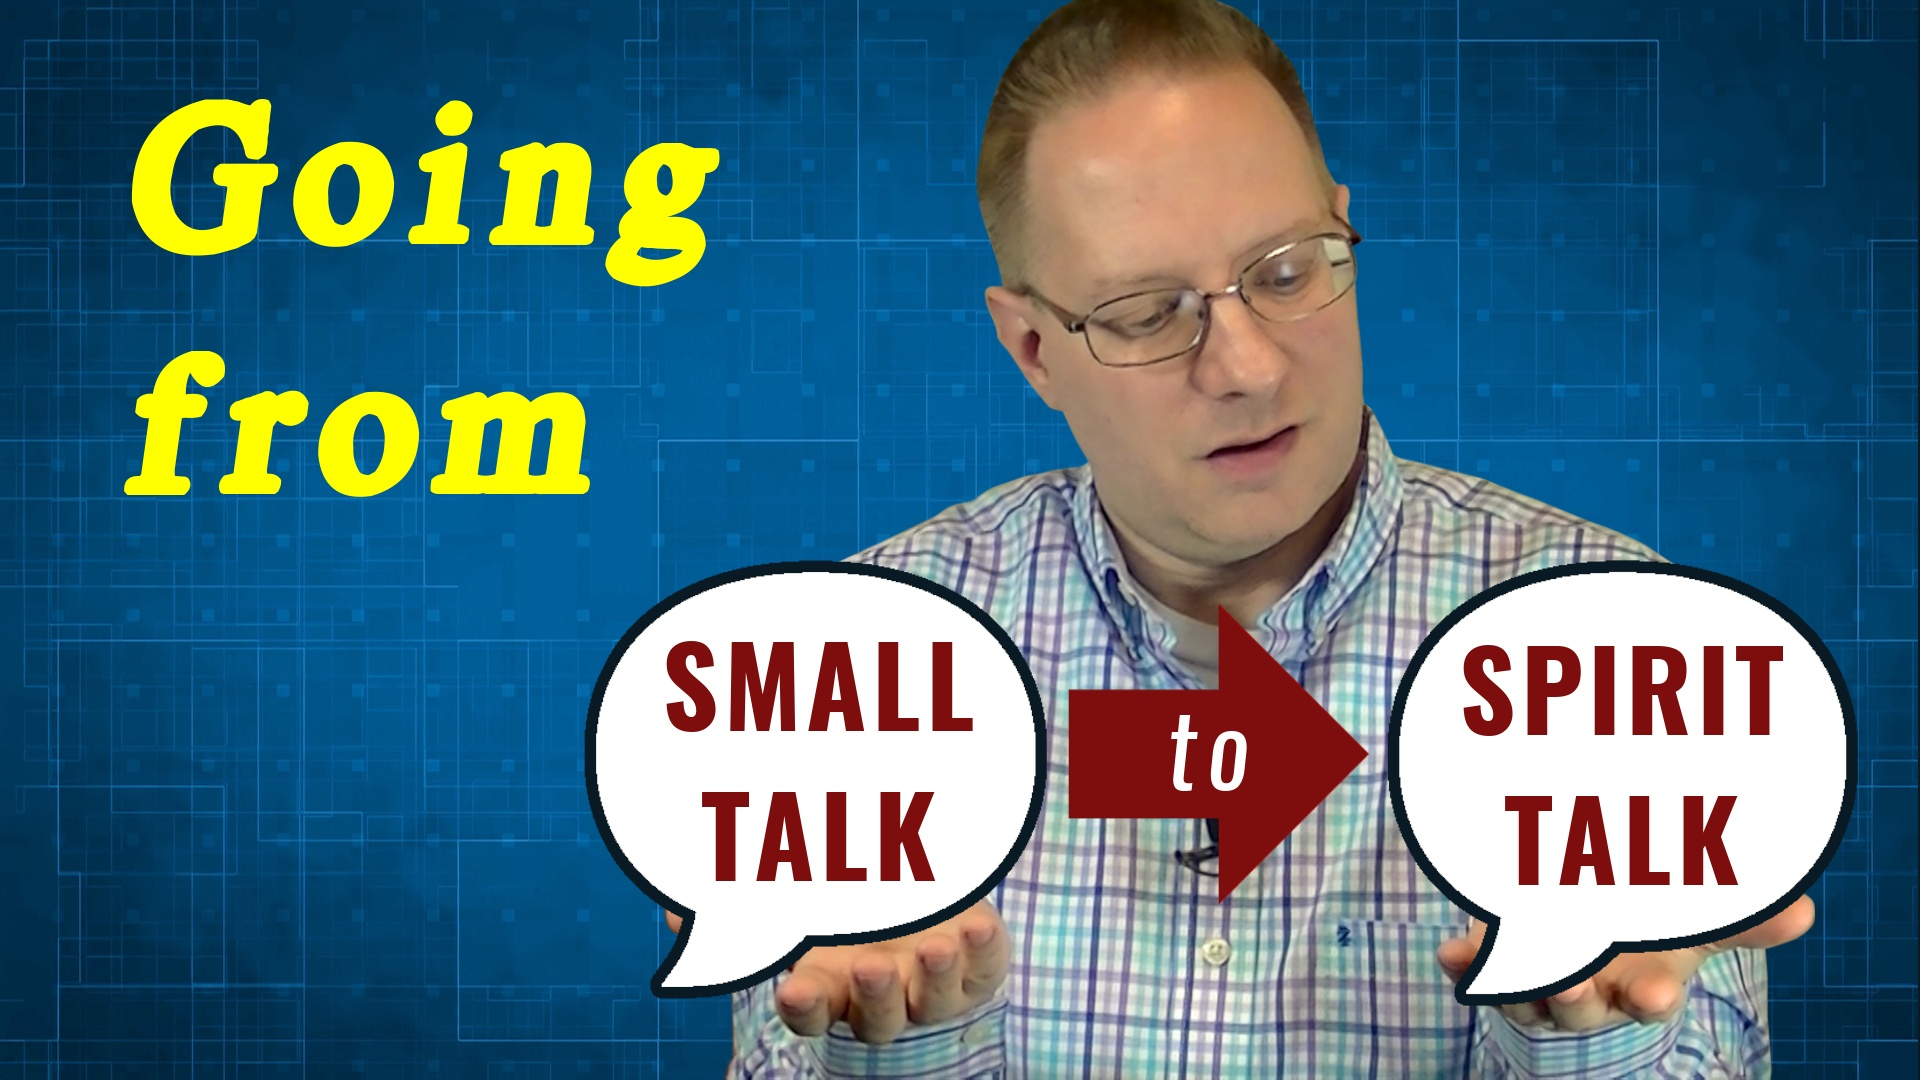 John Rothra holding speech bubbles saying going from small talk to spirit talk